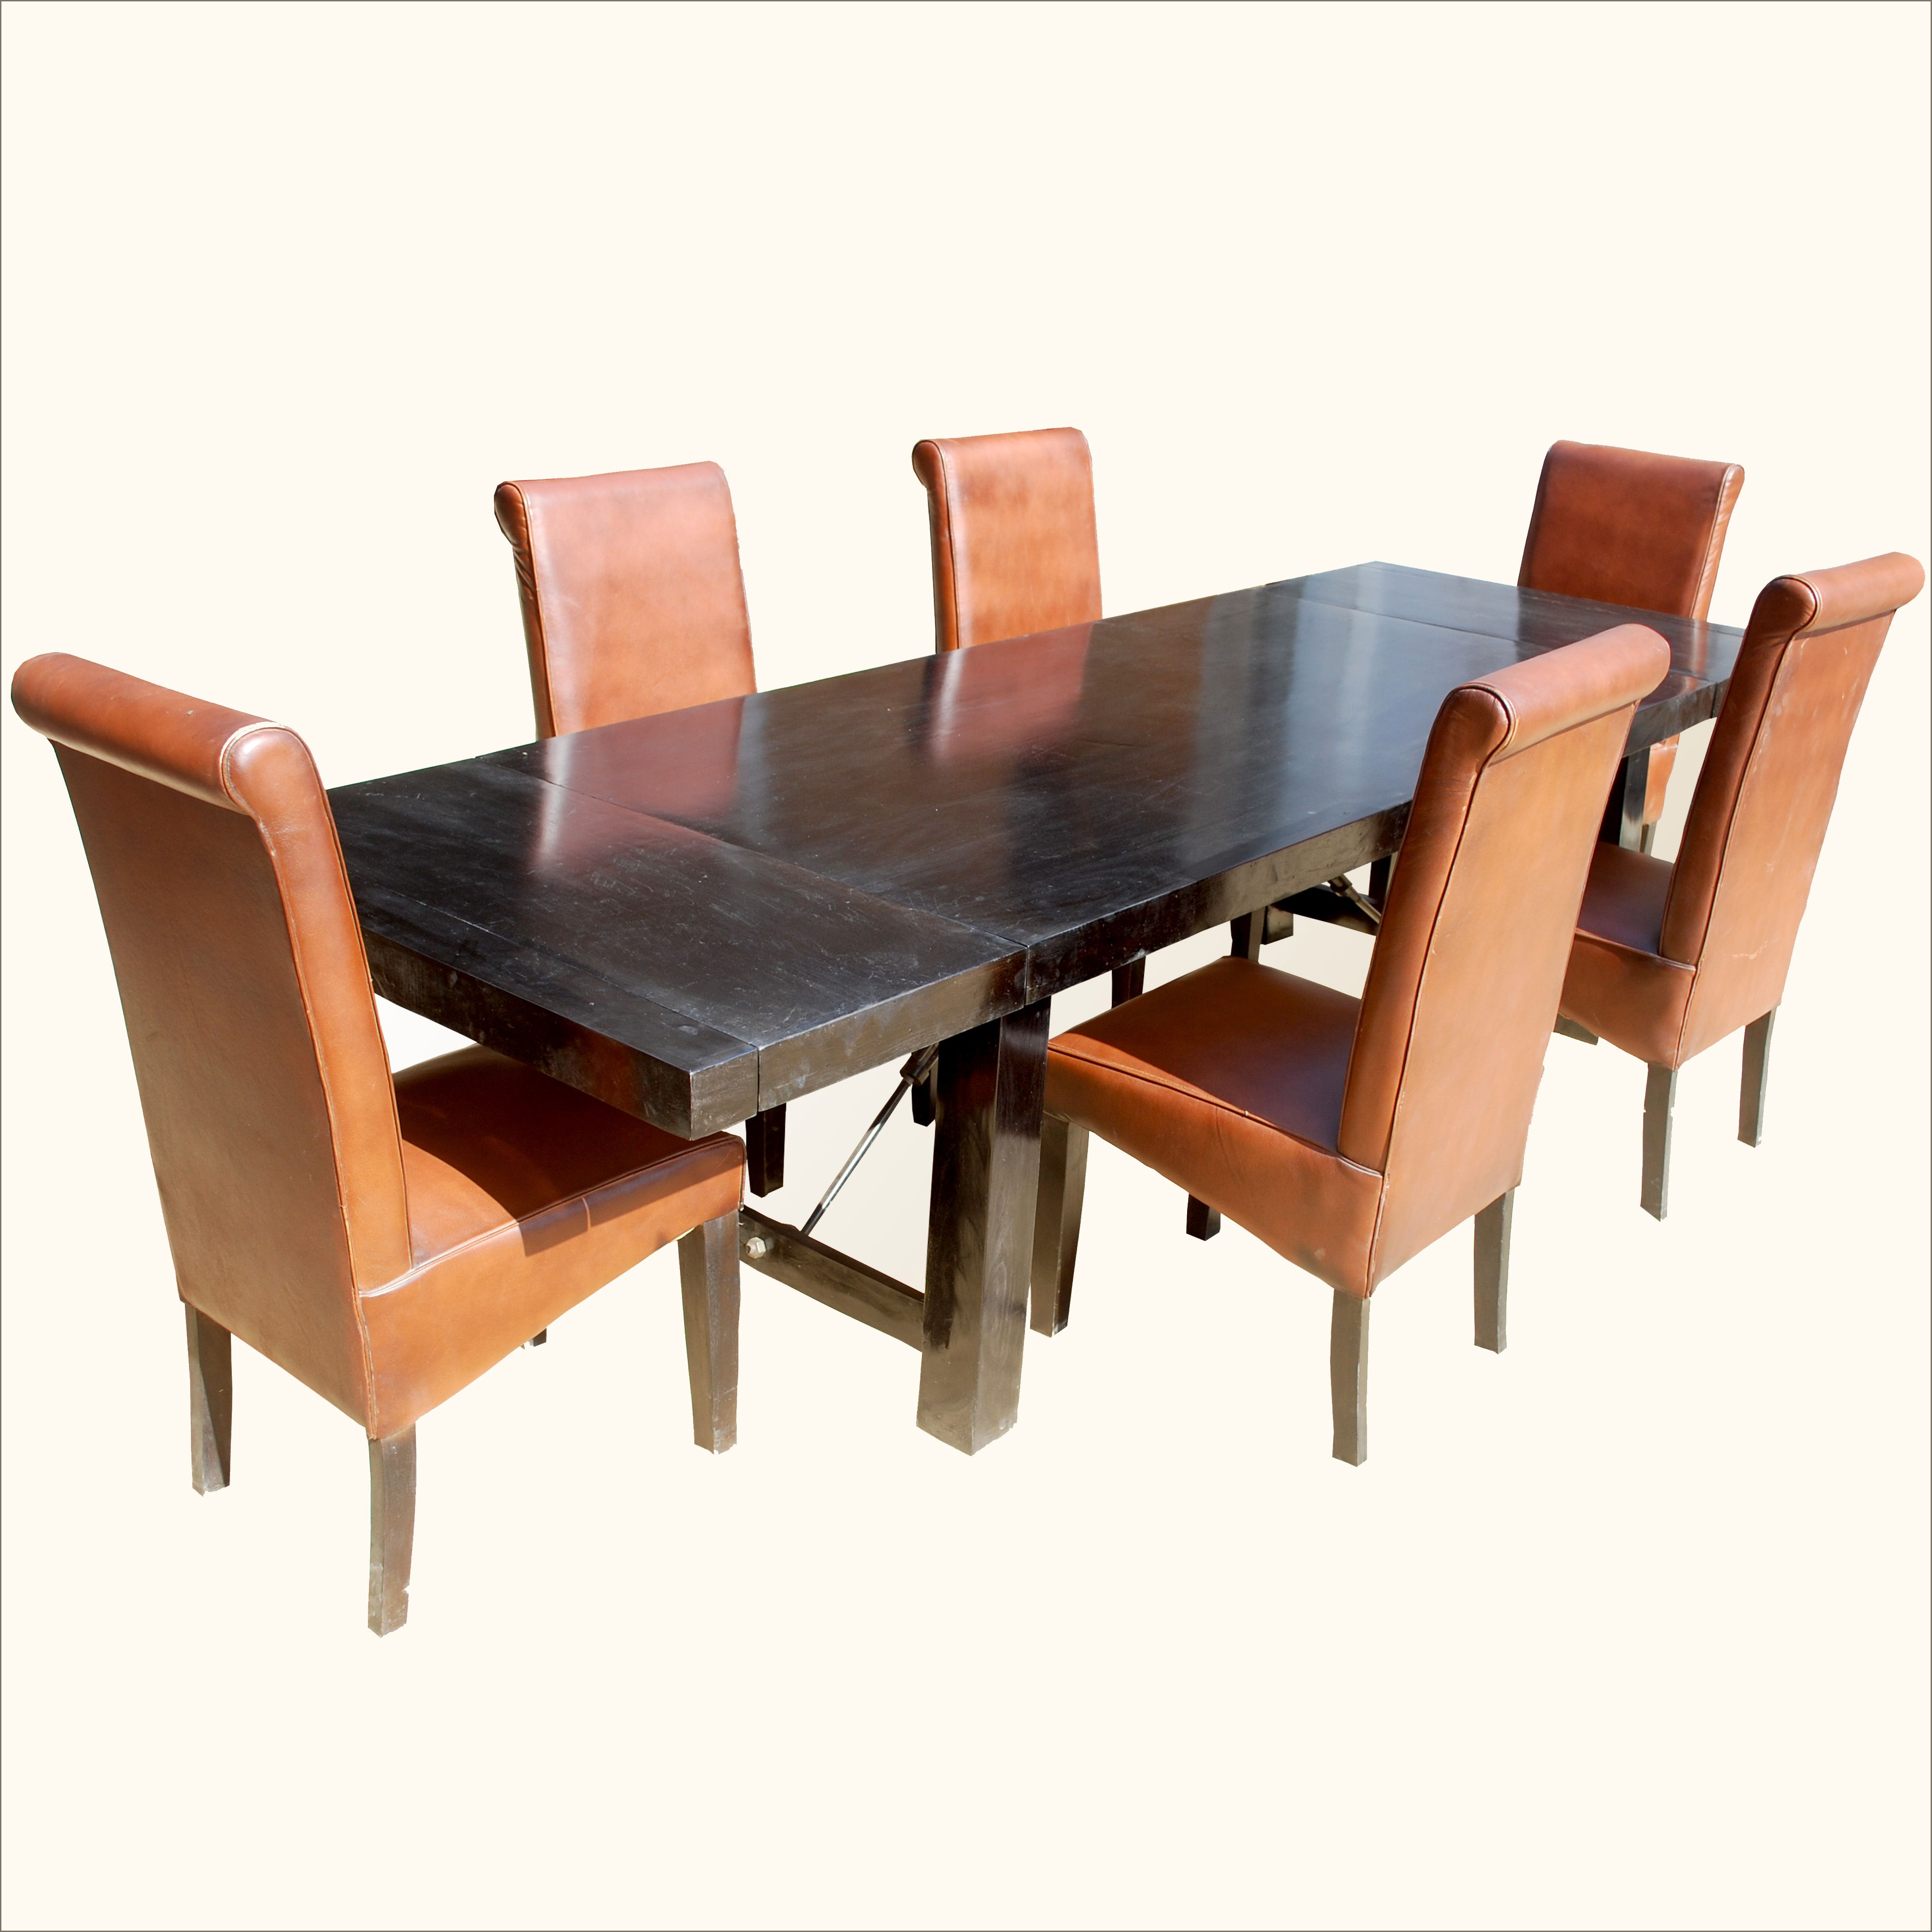 The Light Orange Leather Chairs Contrasts Beautifully Against The